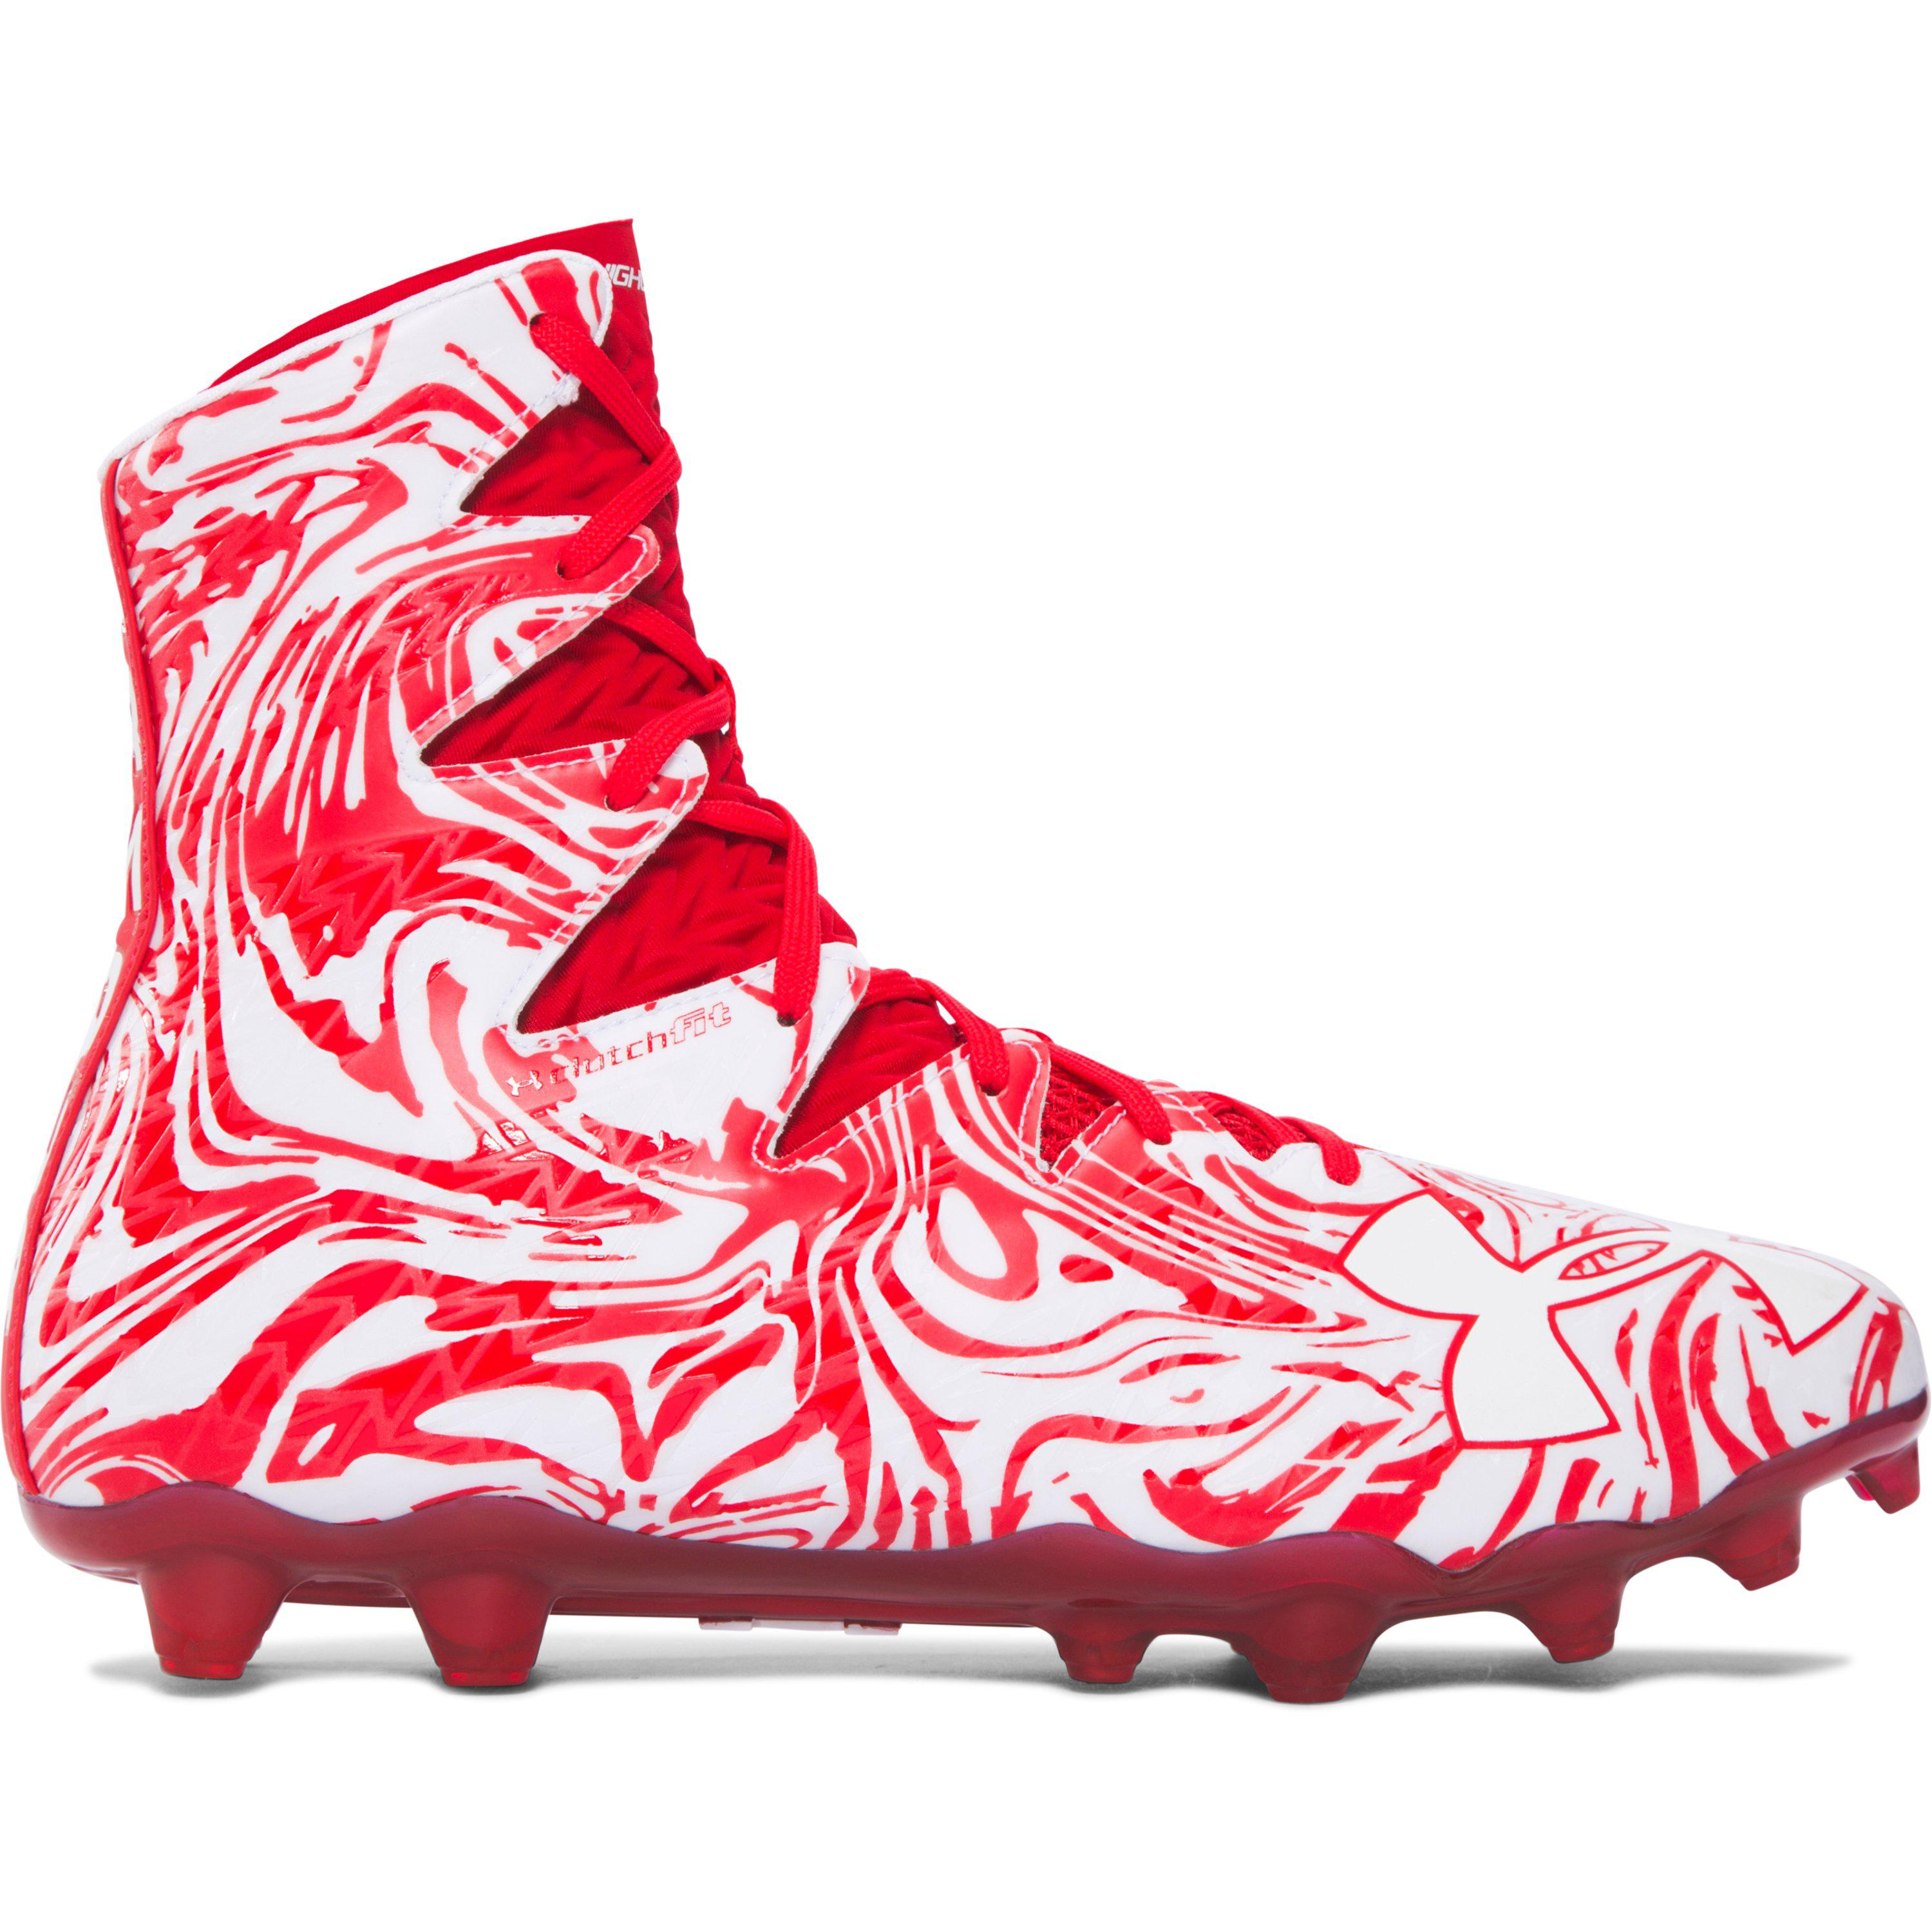 6a47cc154 ... free shipping under armour. red mens ua highlight lux mc football cleats  1acfc ba7cd